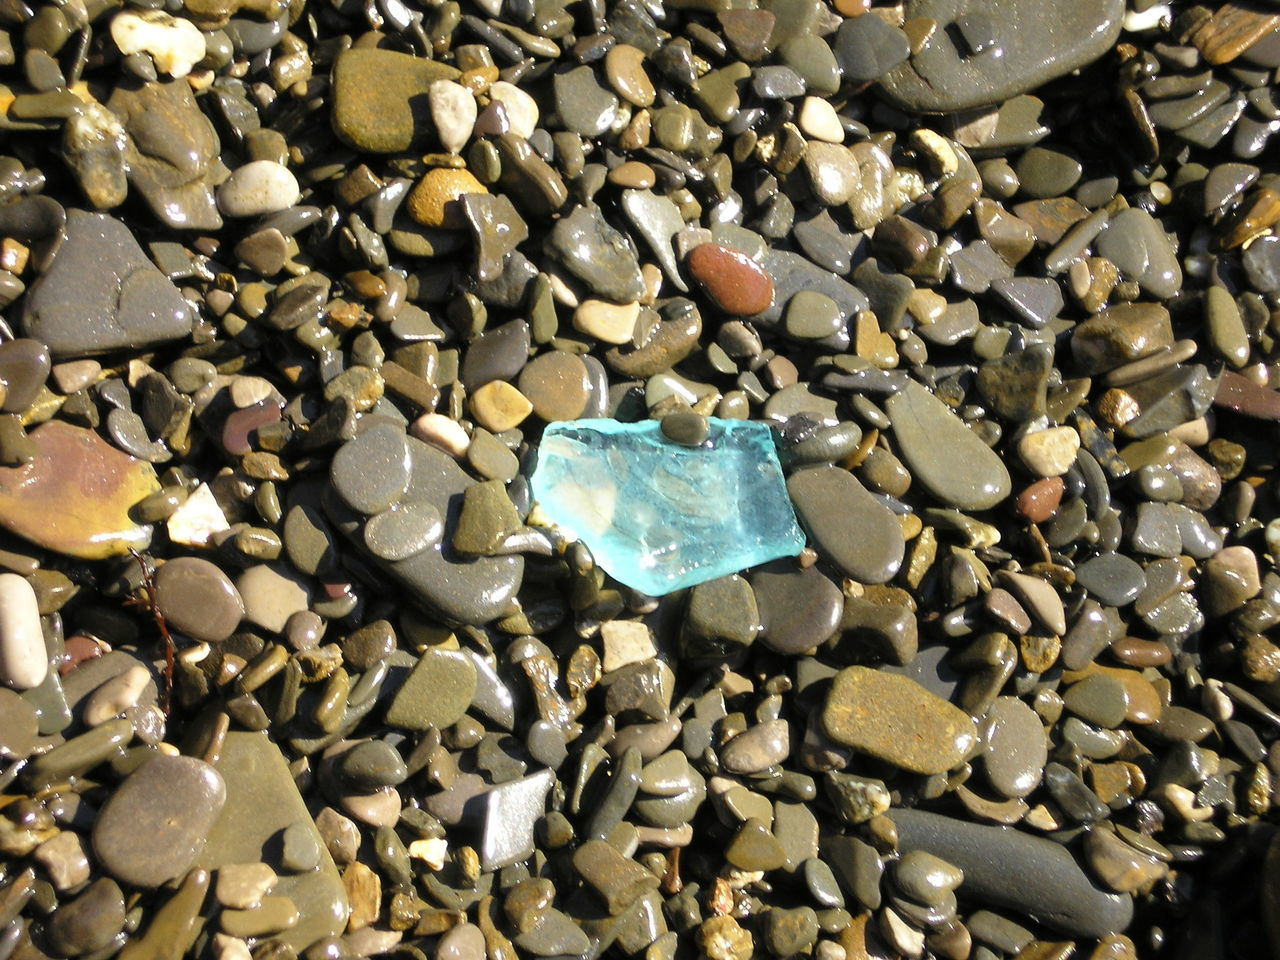 pebble, stone - object, full frame, large group of objects, gemstone, abundance, crystal, rock - object, jewelry, no people, shiny, backgrounds, precious gem, close-up, beach, pebble beach, nature, day, outdoors